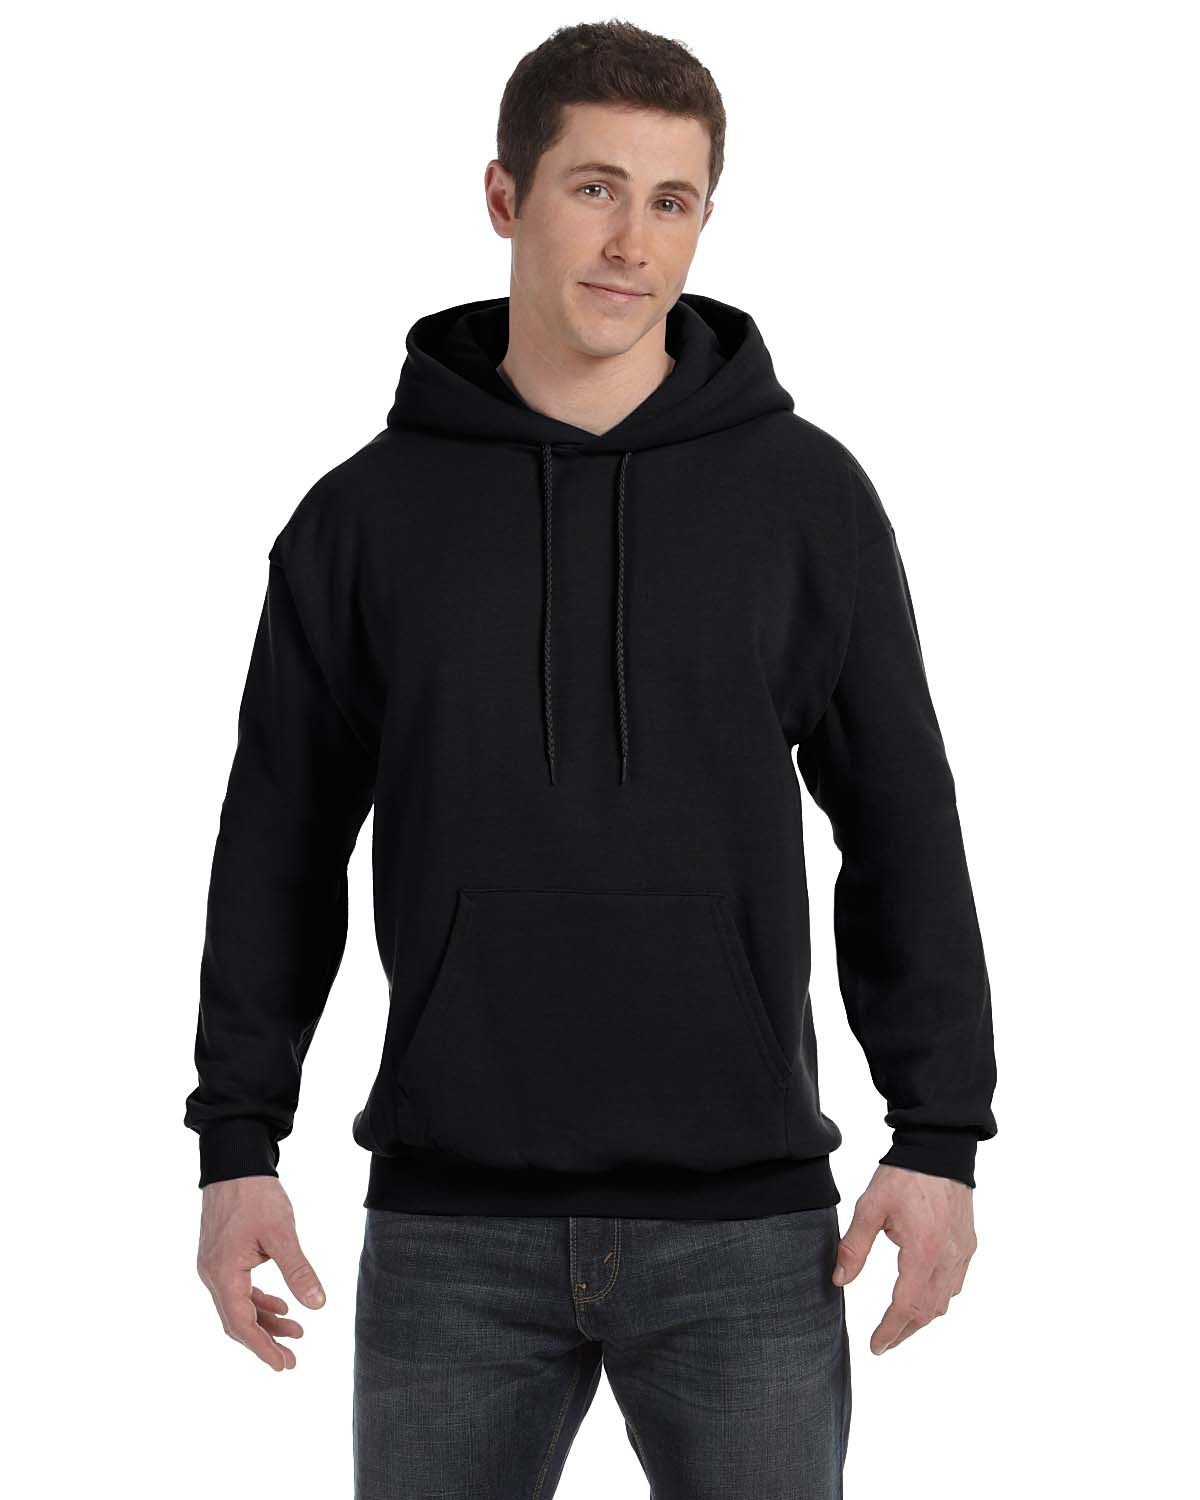 Hanes Comfort EcoSmart Pullover Hooded Sweatshirt Light Steel